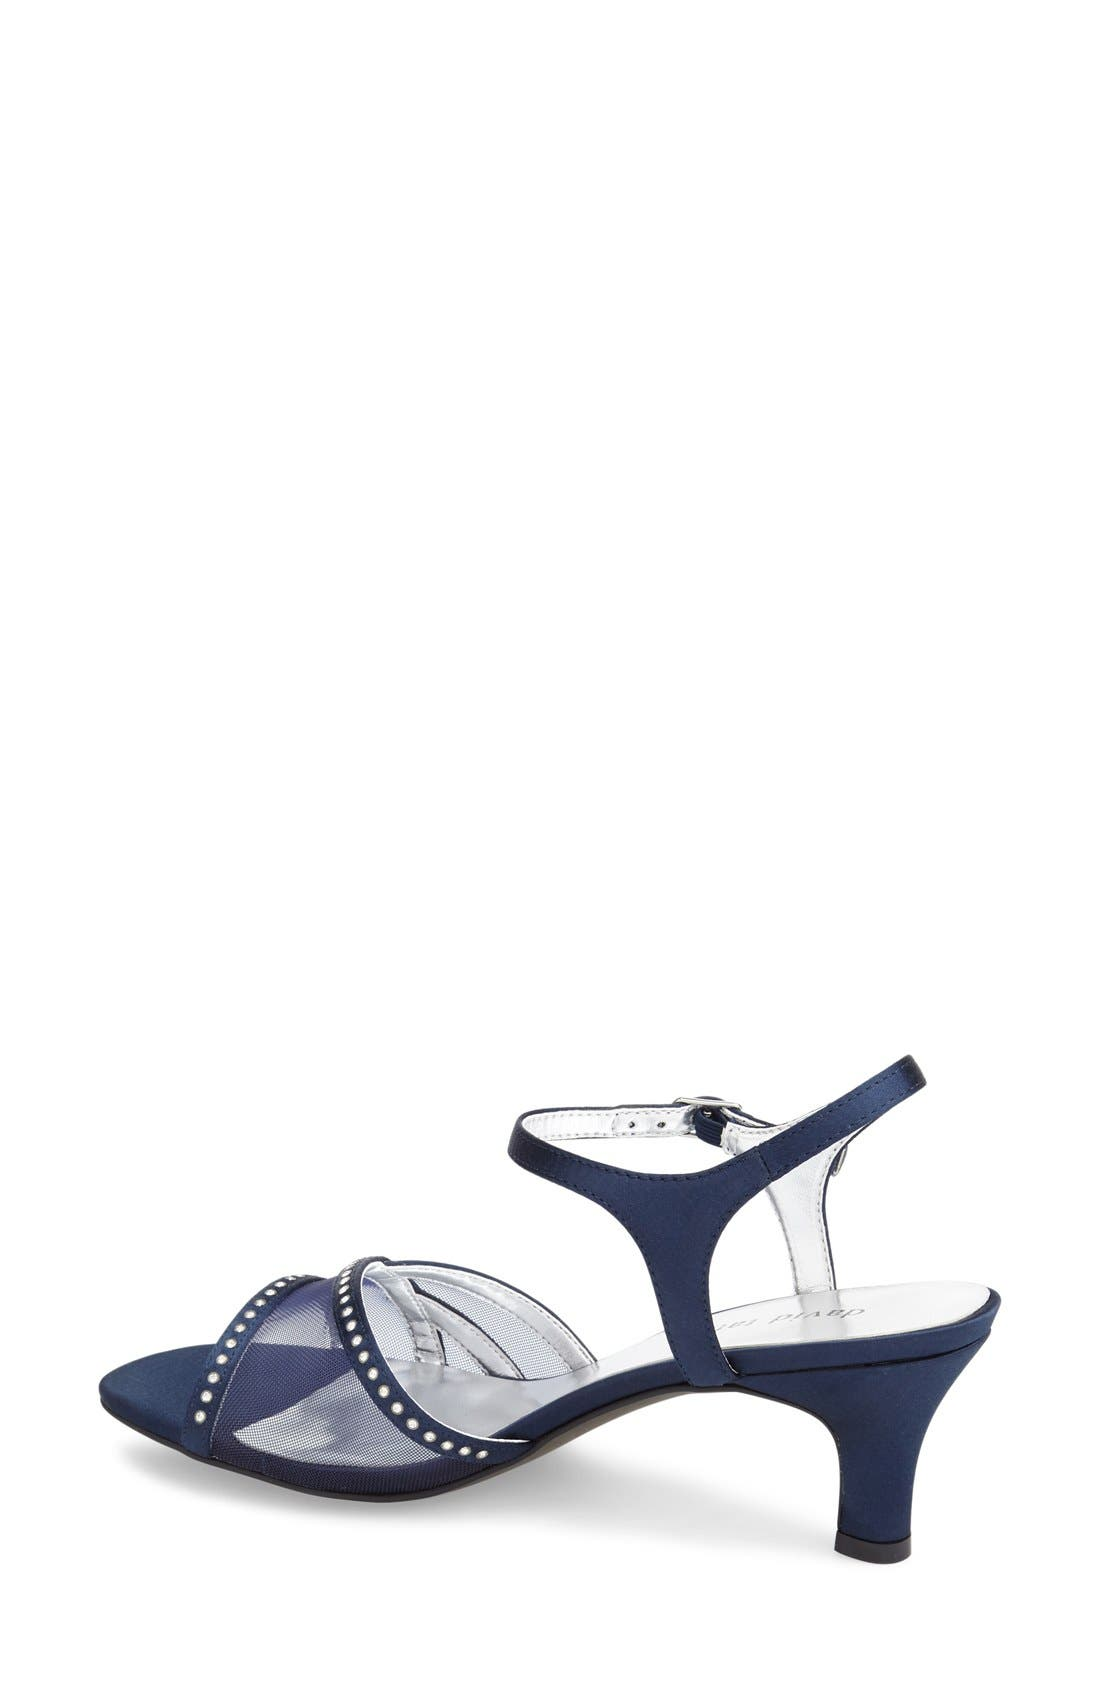 'Violet - Night Out' Sandal,                             Alternate thumbnail 2, color,                             Navy Satin